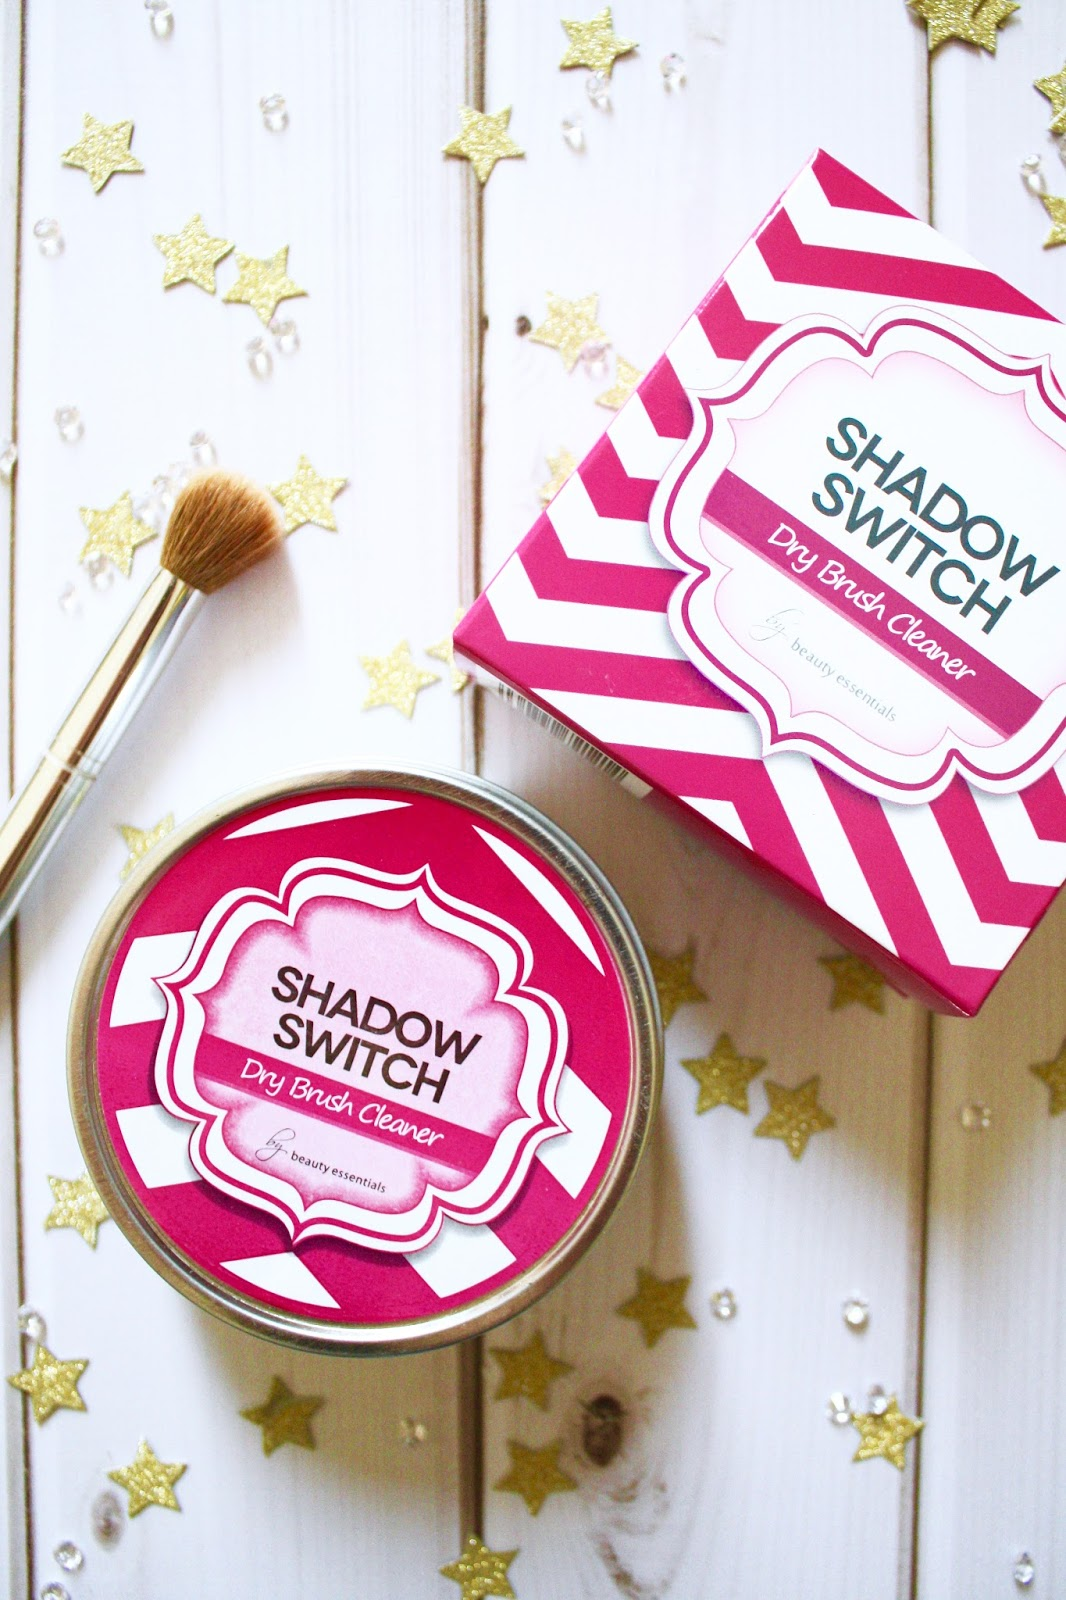 Shadow Switch Dry Brush Cleaner Review